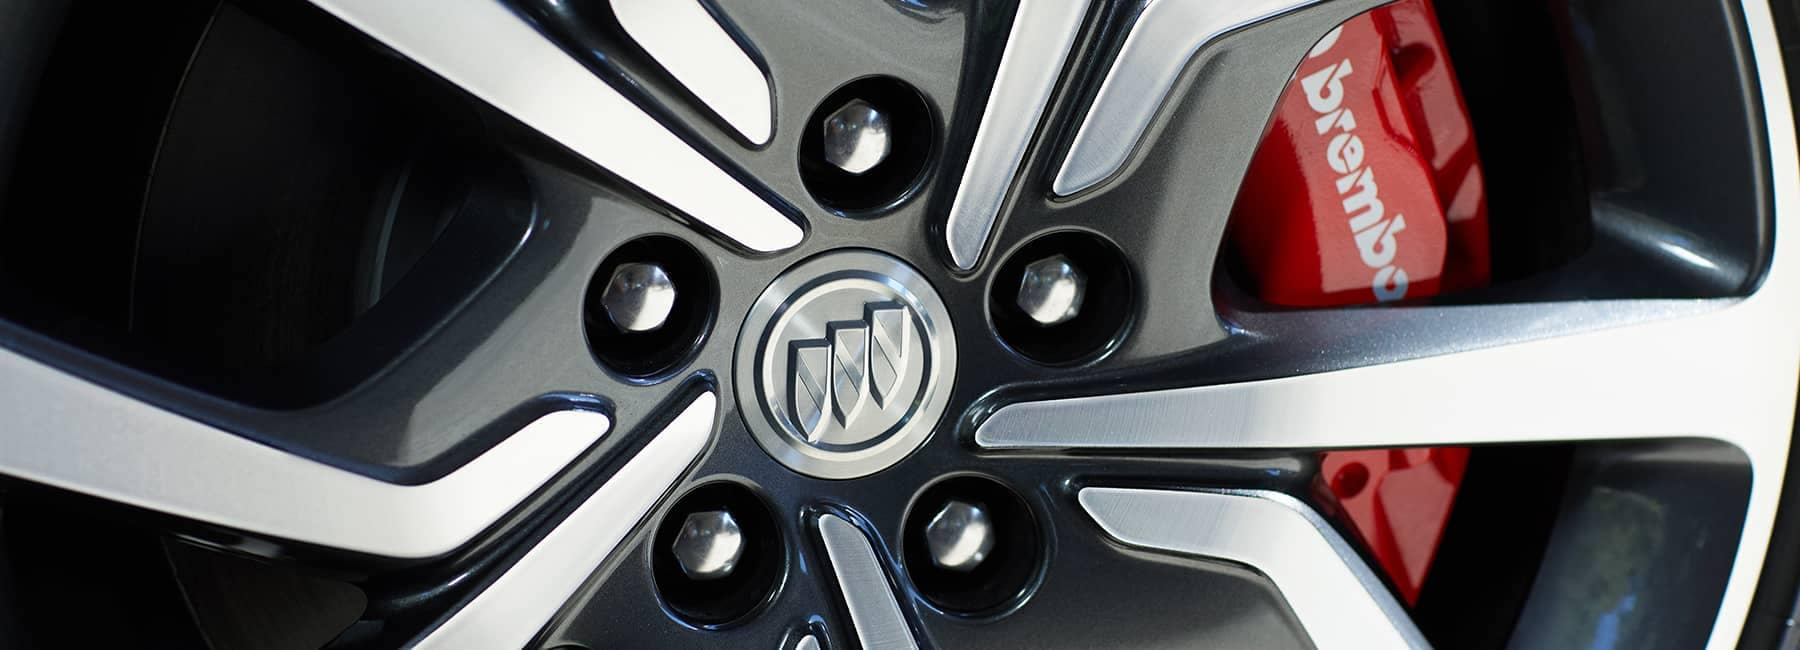 2020 Buick Regal Sportback Tire Rim Closeup